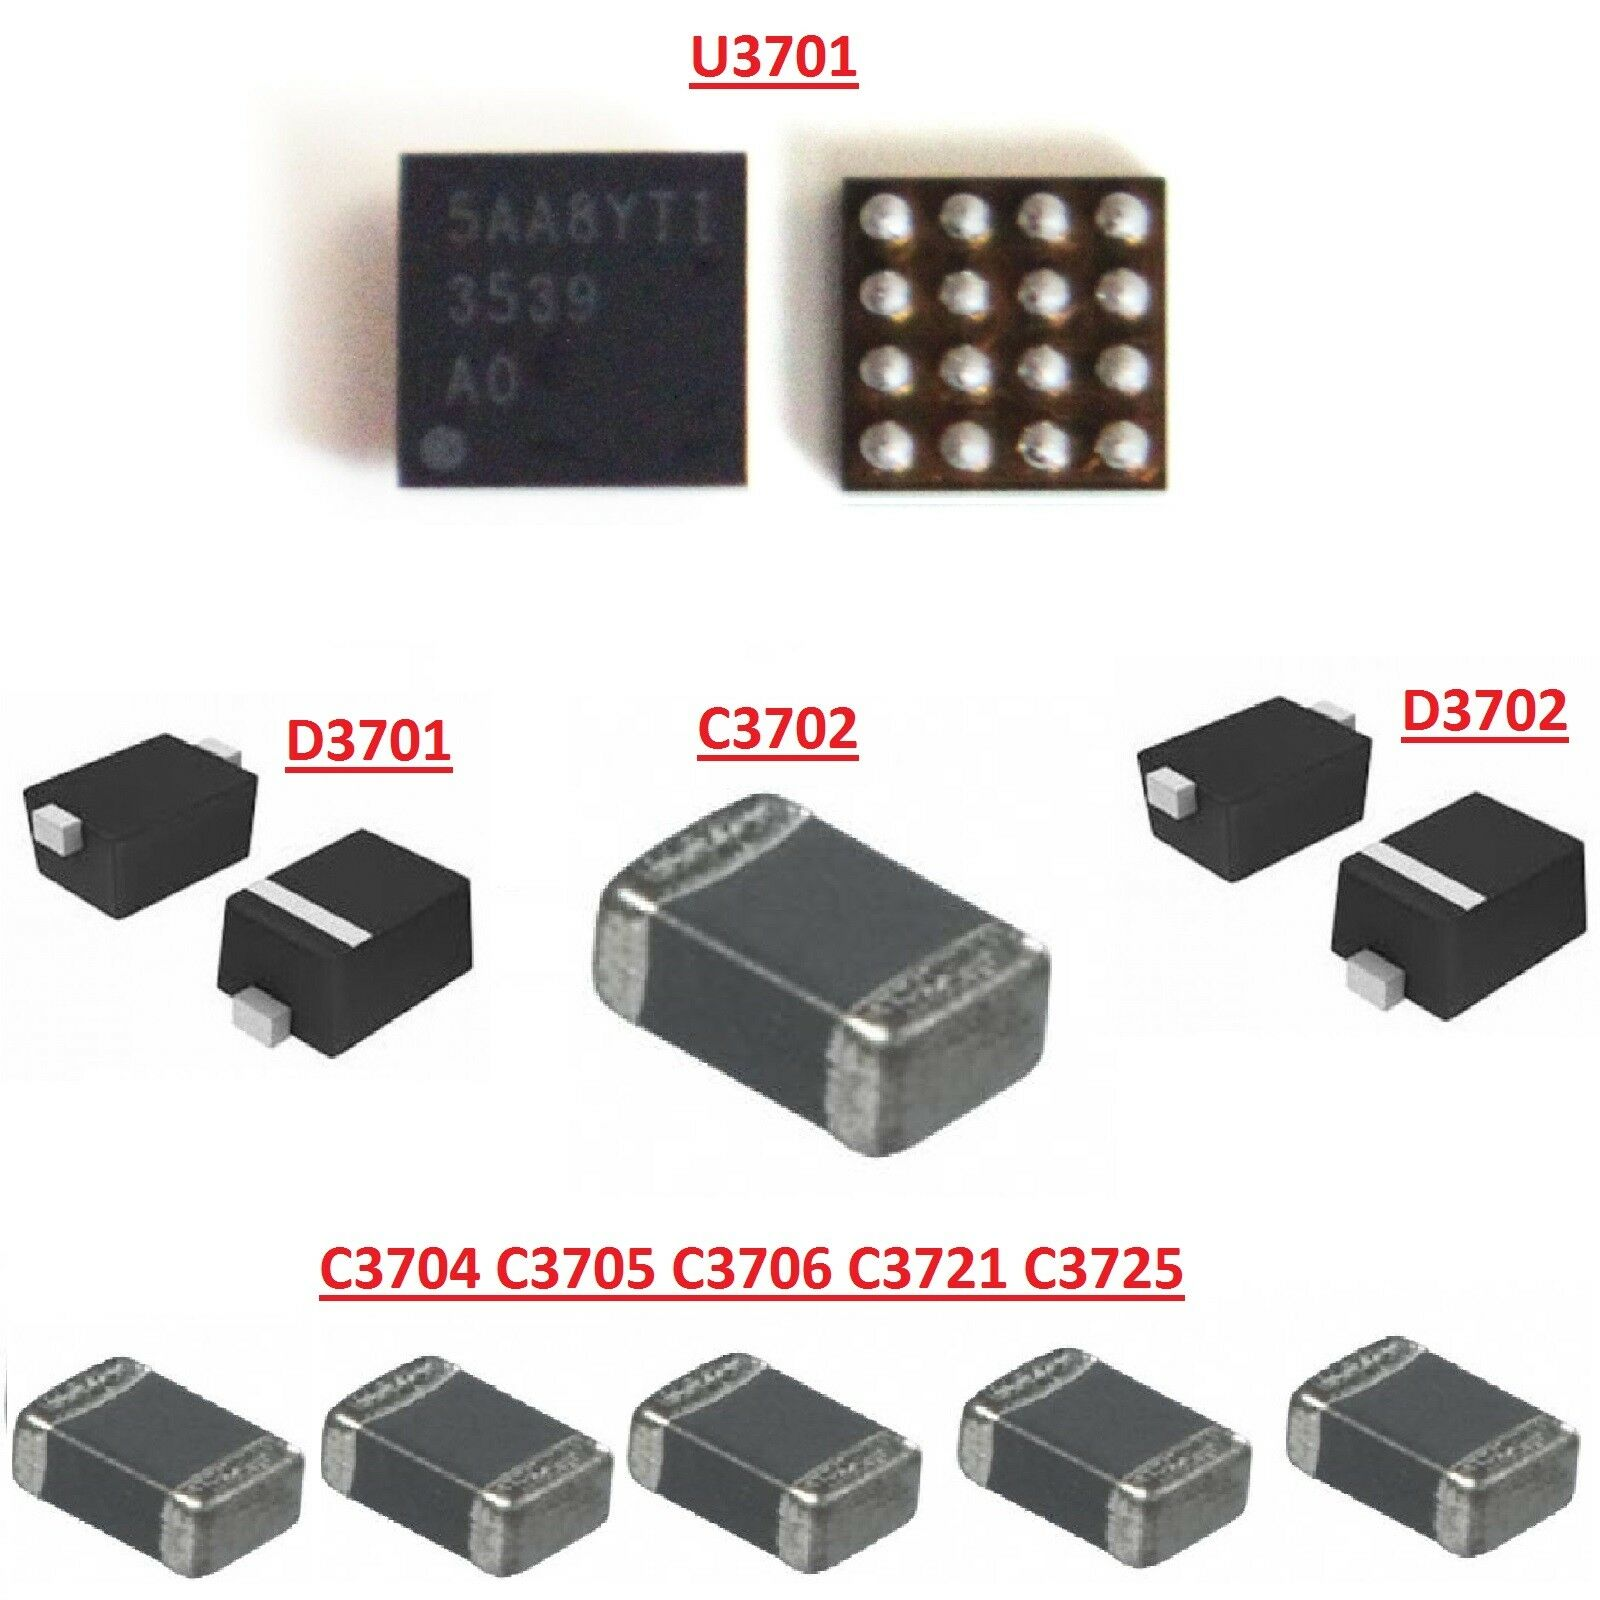 For Iphone 7 Plus Backlight Circuit Repair Kit With Ic Diodes Usb 6g 6p 1610a2 1 Von 6 Siehe Mehr